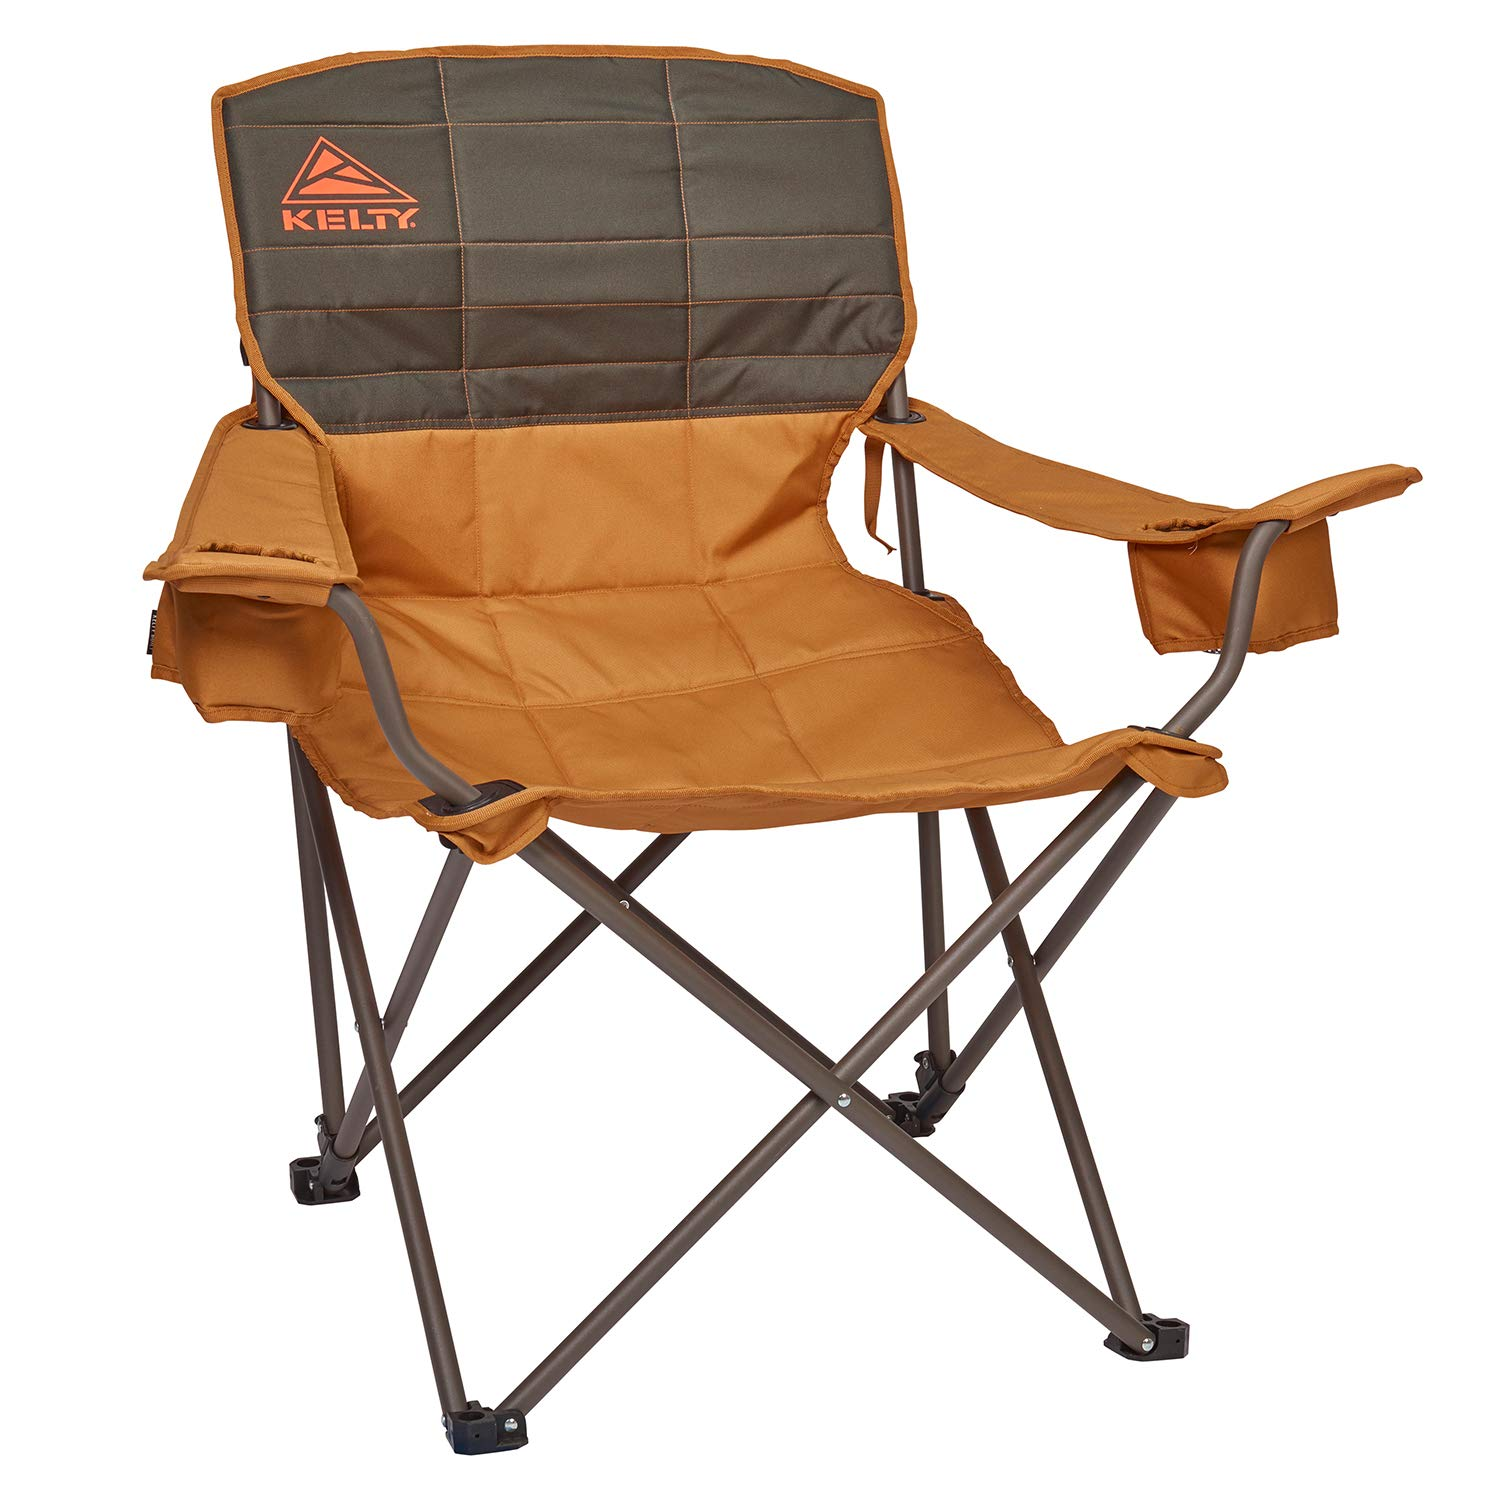 Awesome Kelty Deluxe Reclining Lounge Chair Deep Lake Fallen Rock Folding Camp Chair For Festivals Camping And Beach Days Updated 2019 Model Onthecornerstone Fun Painted Chair Ideas Images Onthecornerstoneorg